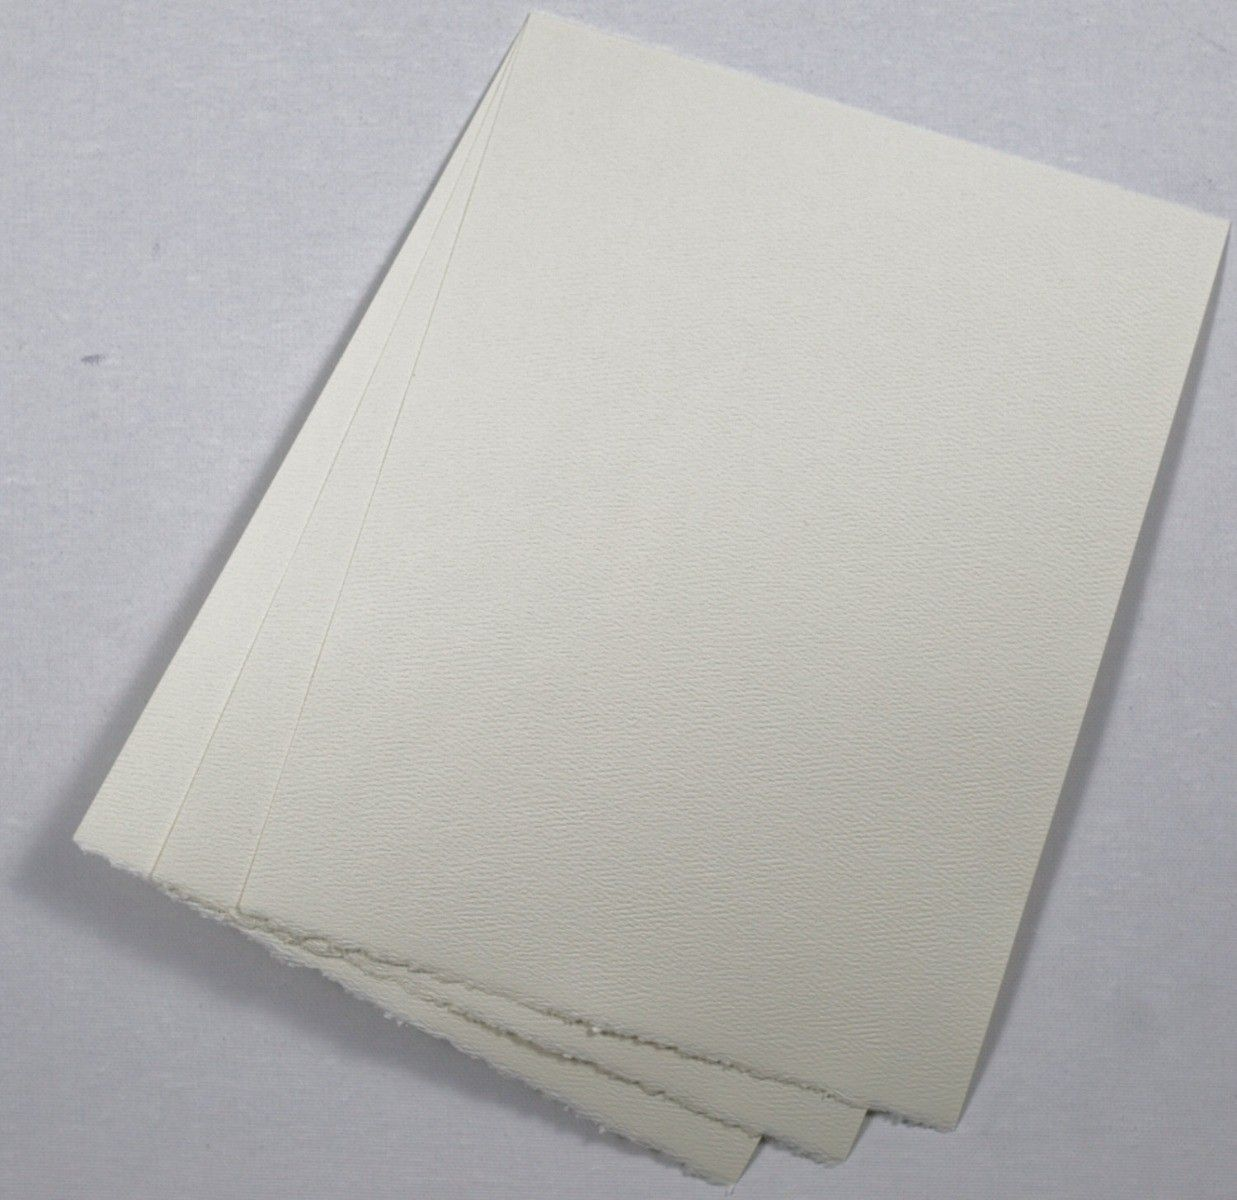 Deckled Edge Legal Size Cardstock Paper 8 5x14 Natural White Premium Pastelle 80c 216gsm 100 Pk In 2021 Cardstock Paper Color Grouping Paper Texture